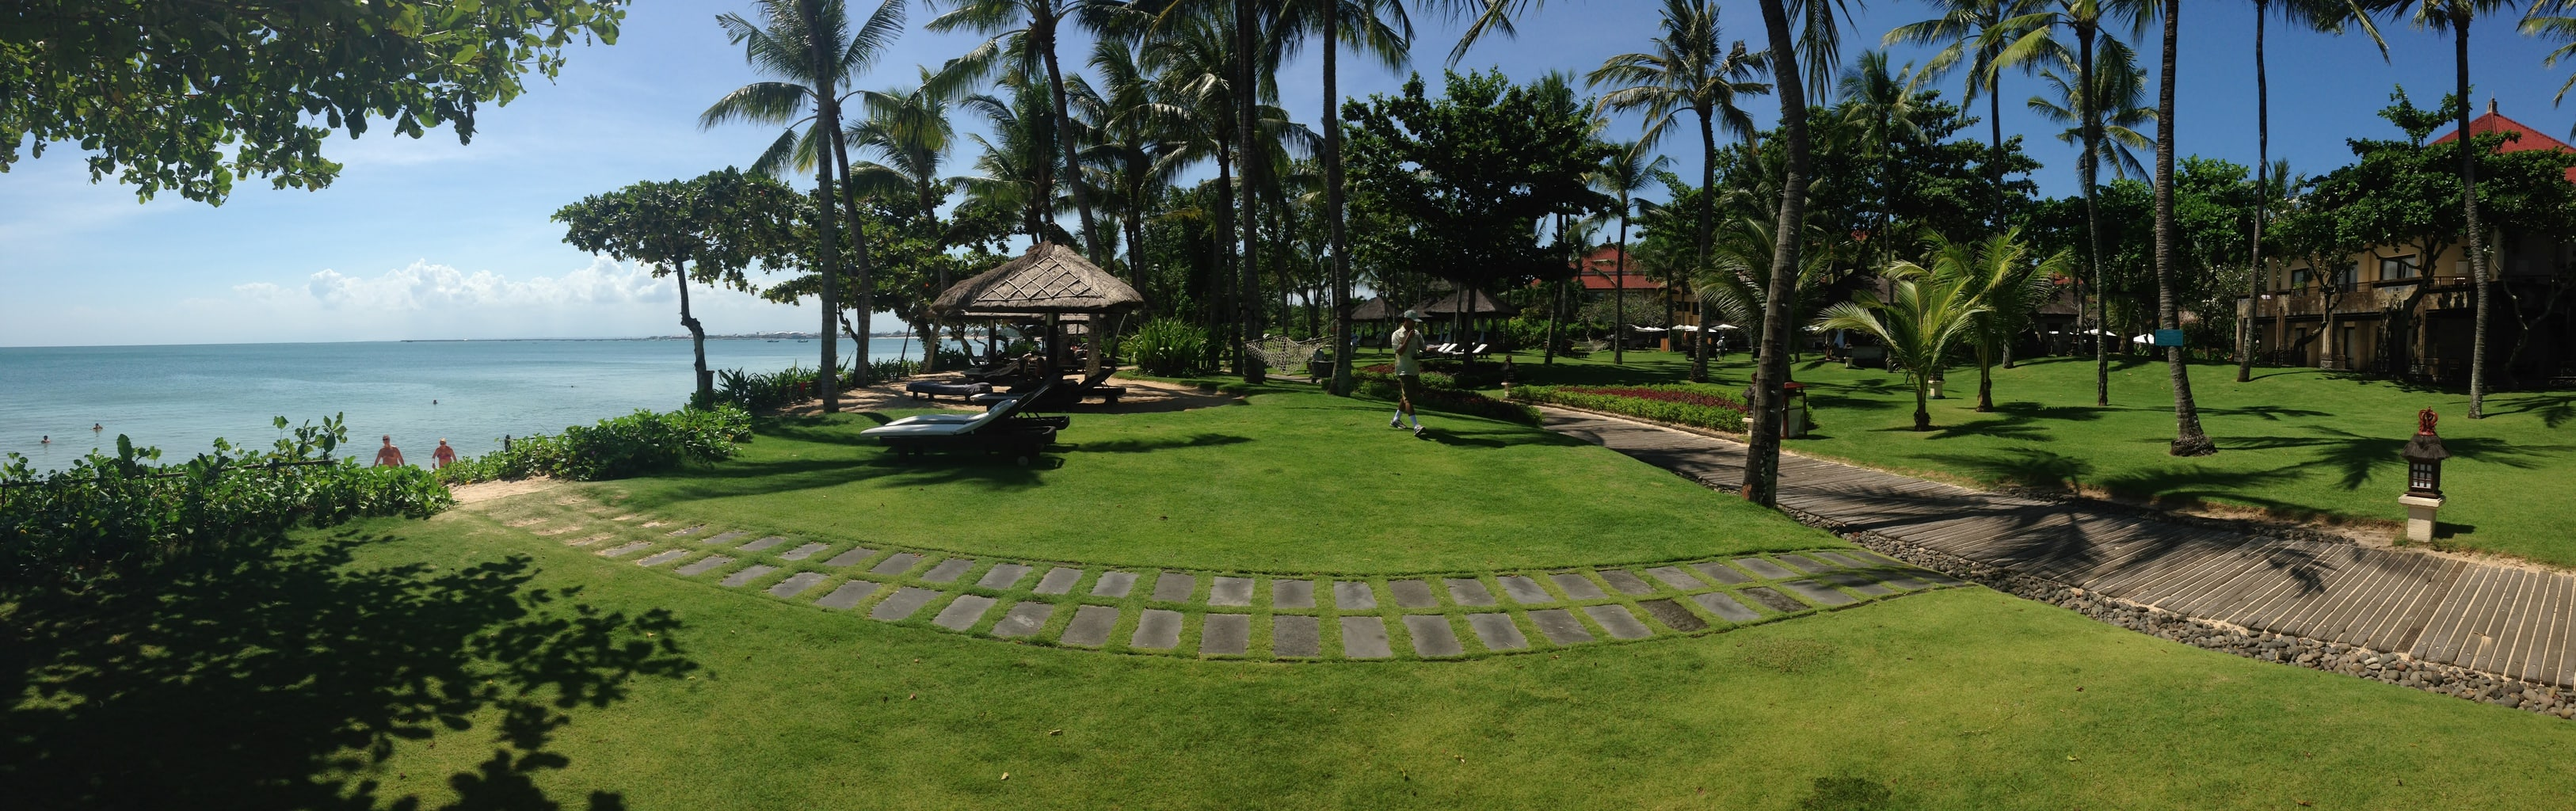 Oh-So: An exclusive stay at the Intercontinental Resort Bali